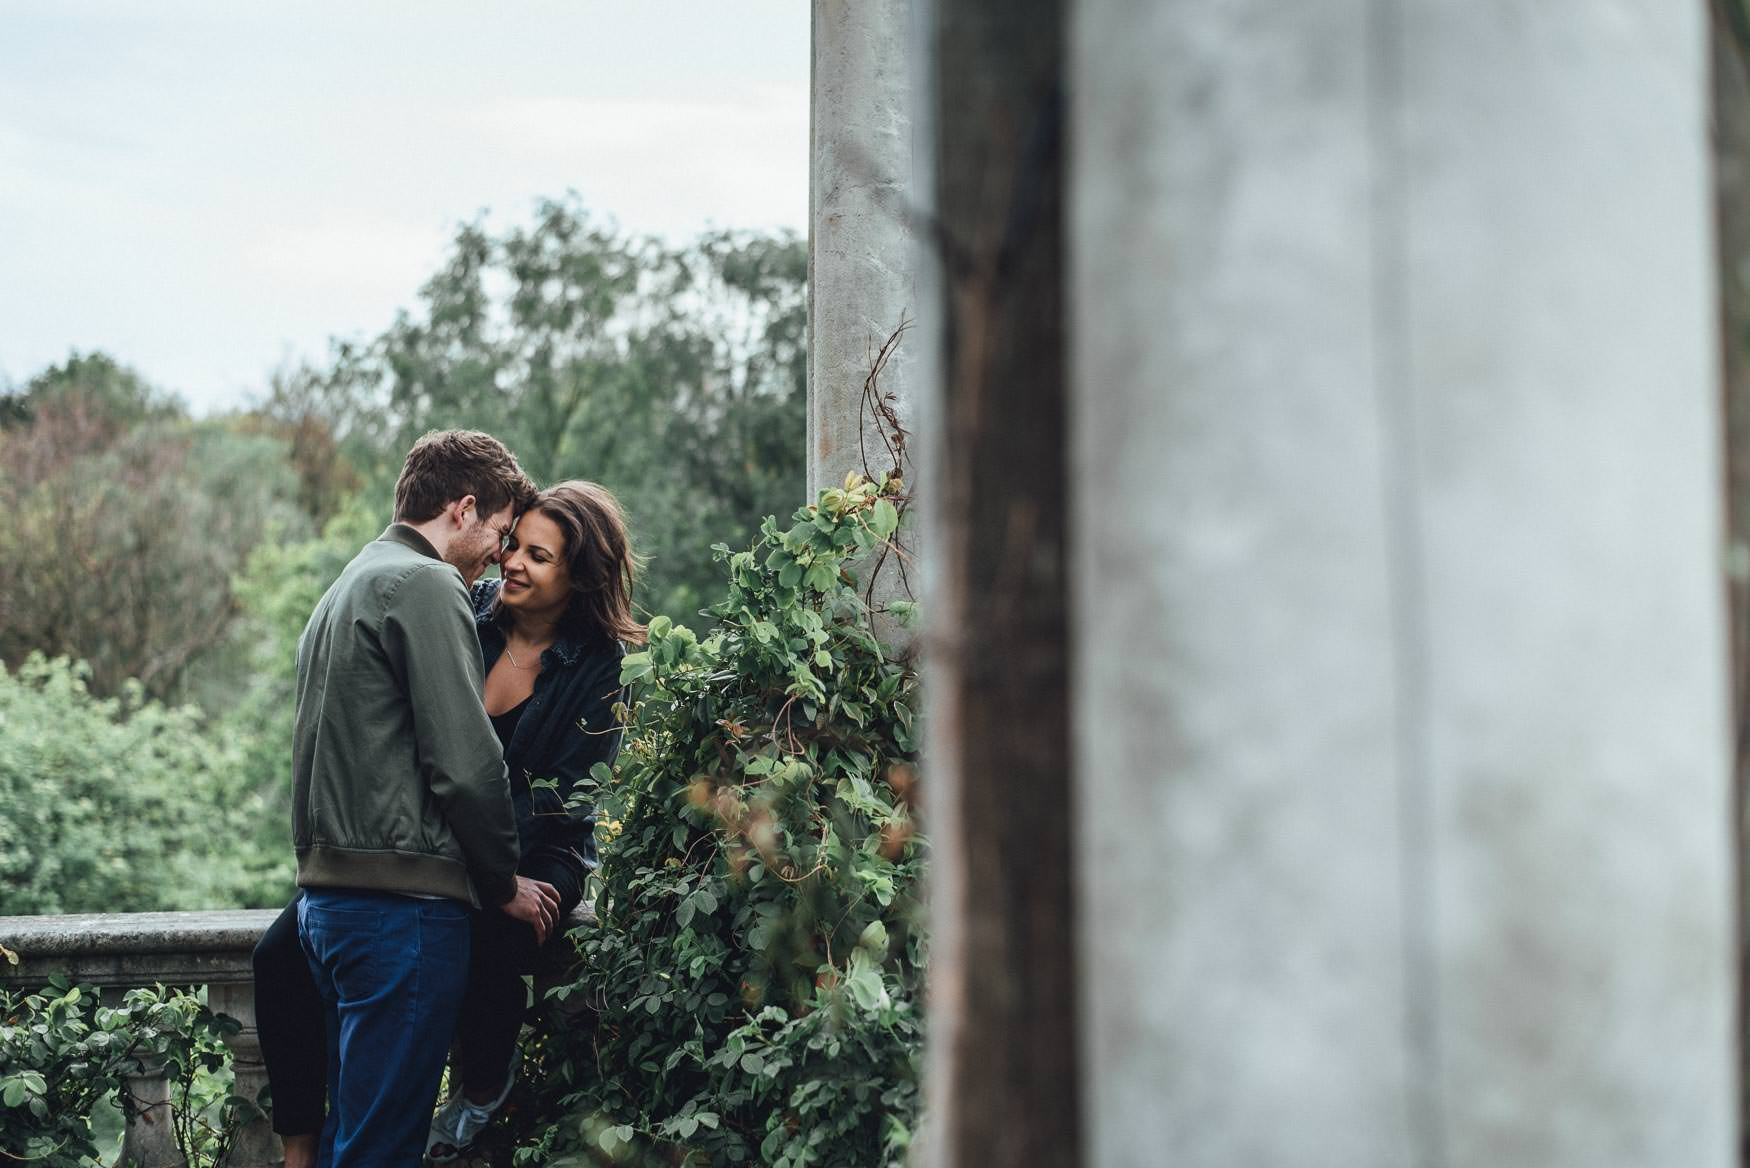 Couple smiling and embracing, surrounded by foliage. Romantic, fun london engagement shoot.